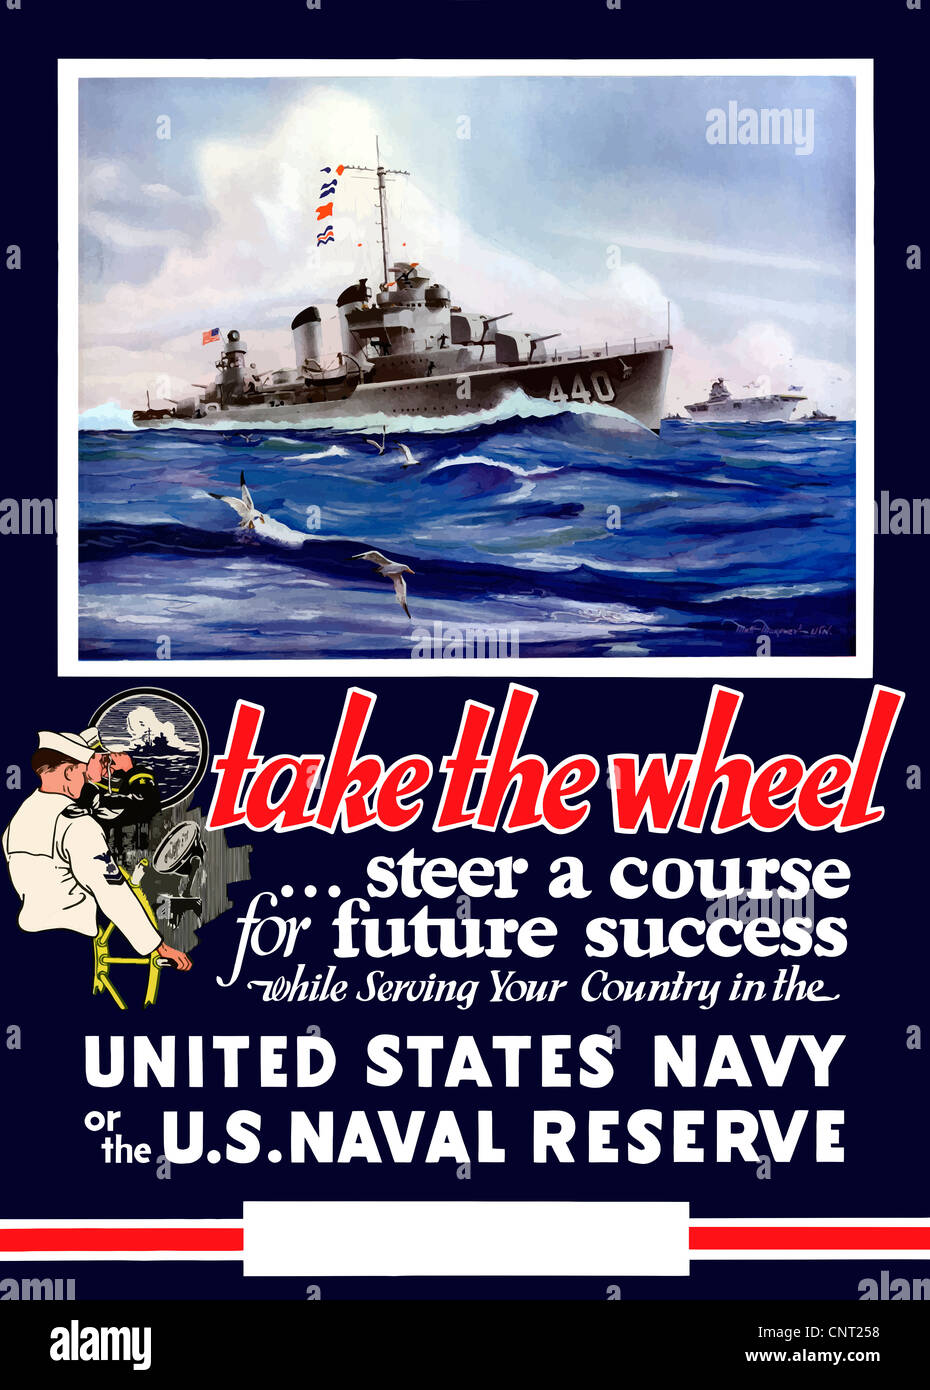 This vintage World War II Navy poster features US warships on the sea. - Stock Image